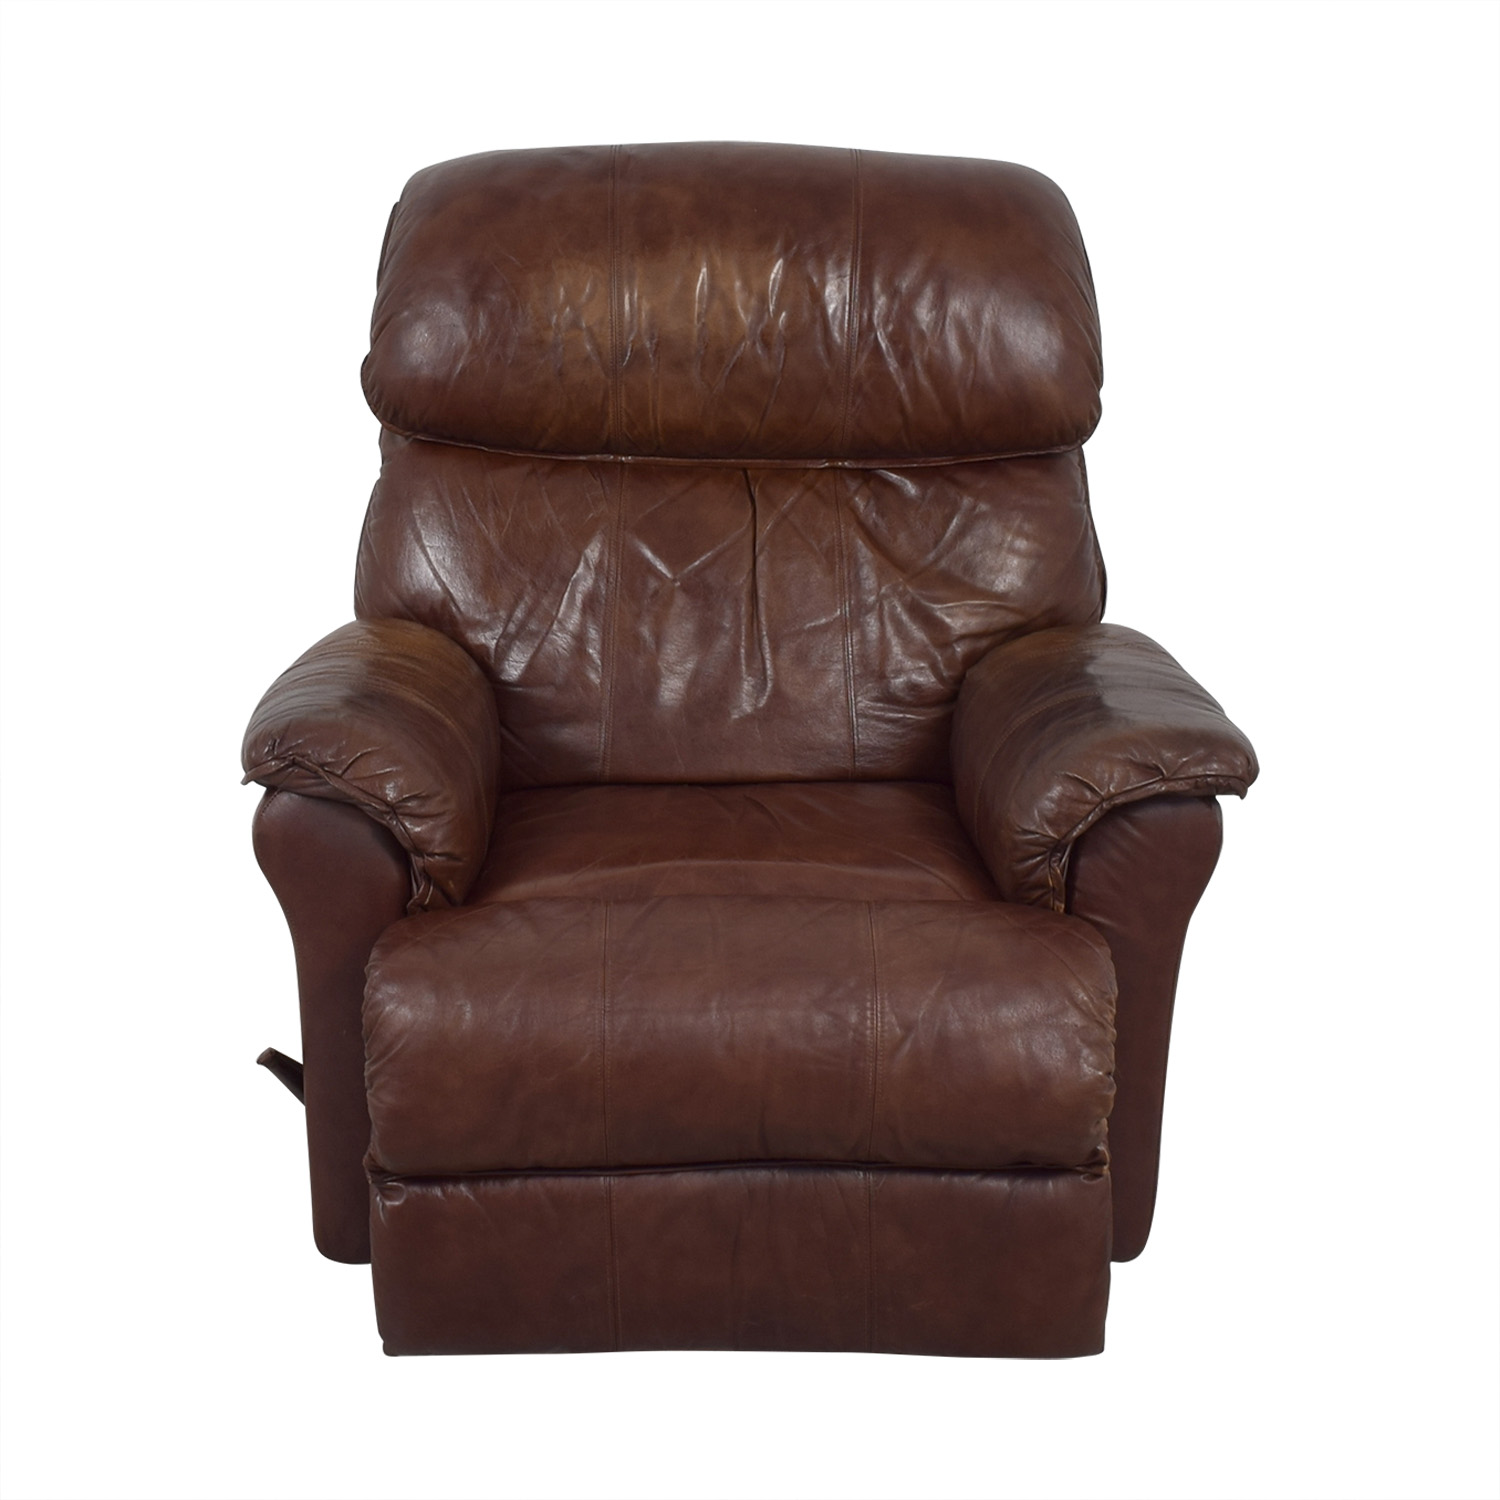 Brown Manual Recliner second hand